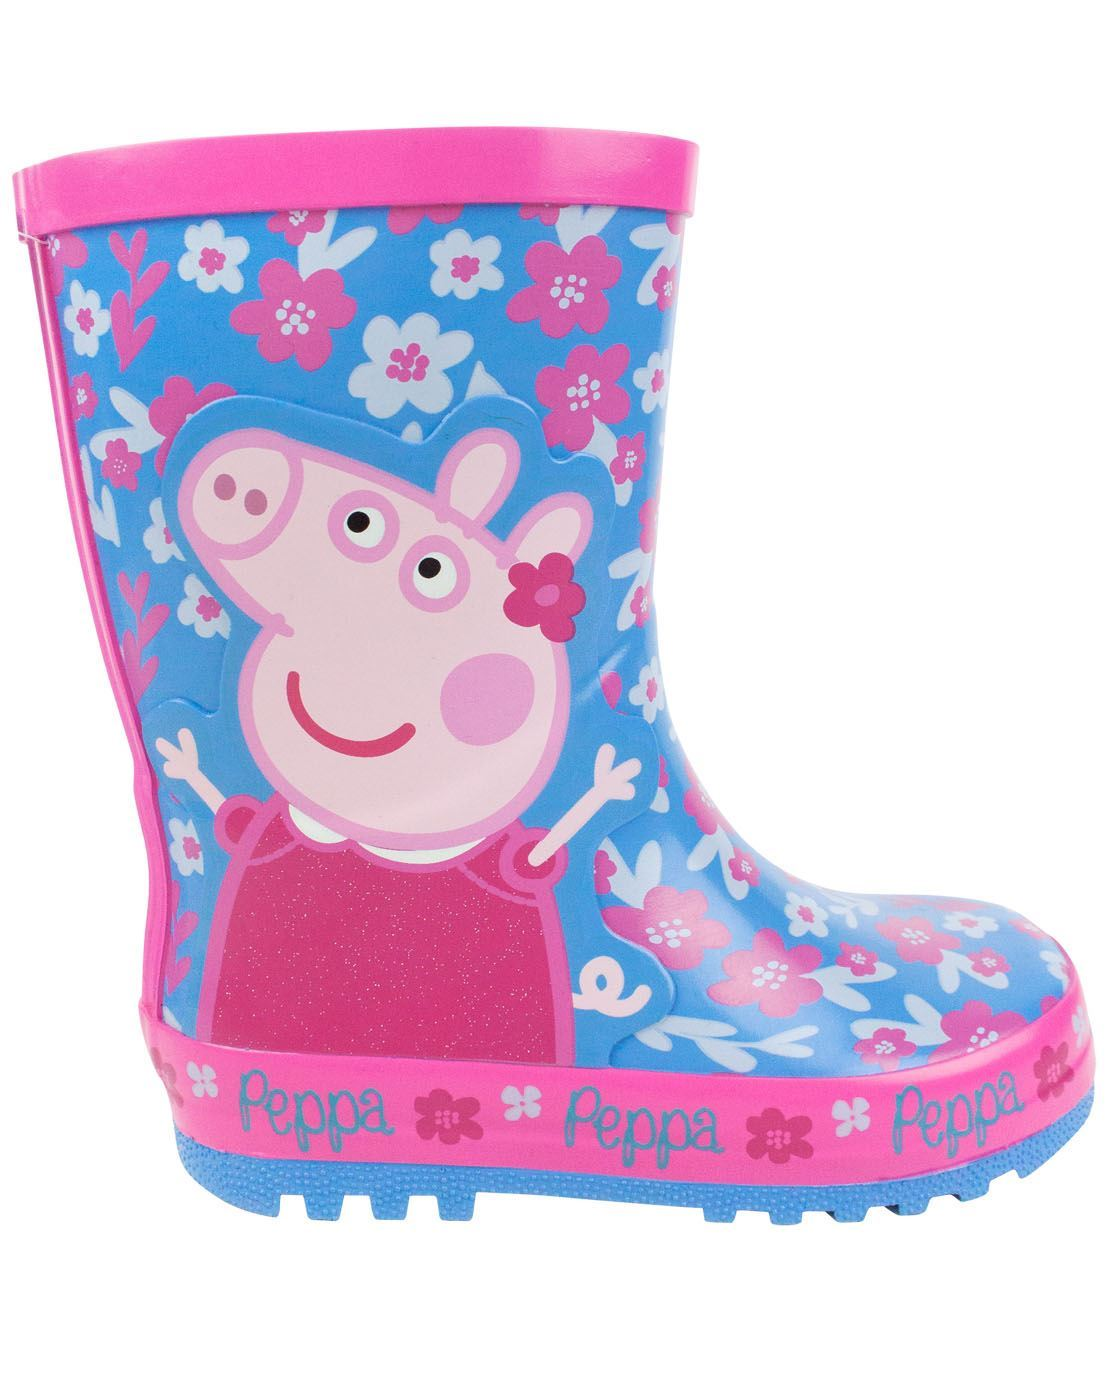 Details Boots Kids Peppa Wellington Wellies 10 Sizes Rain About 4 To Pig Flower Girl's Uk Blue LSUzpVjqMG